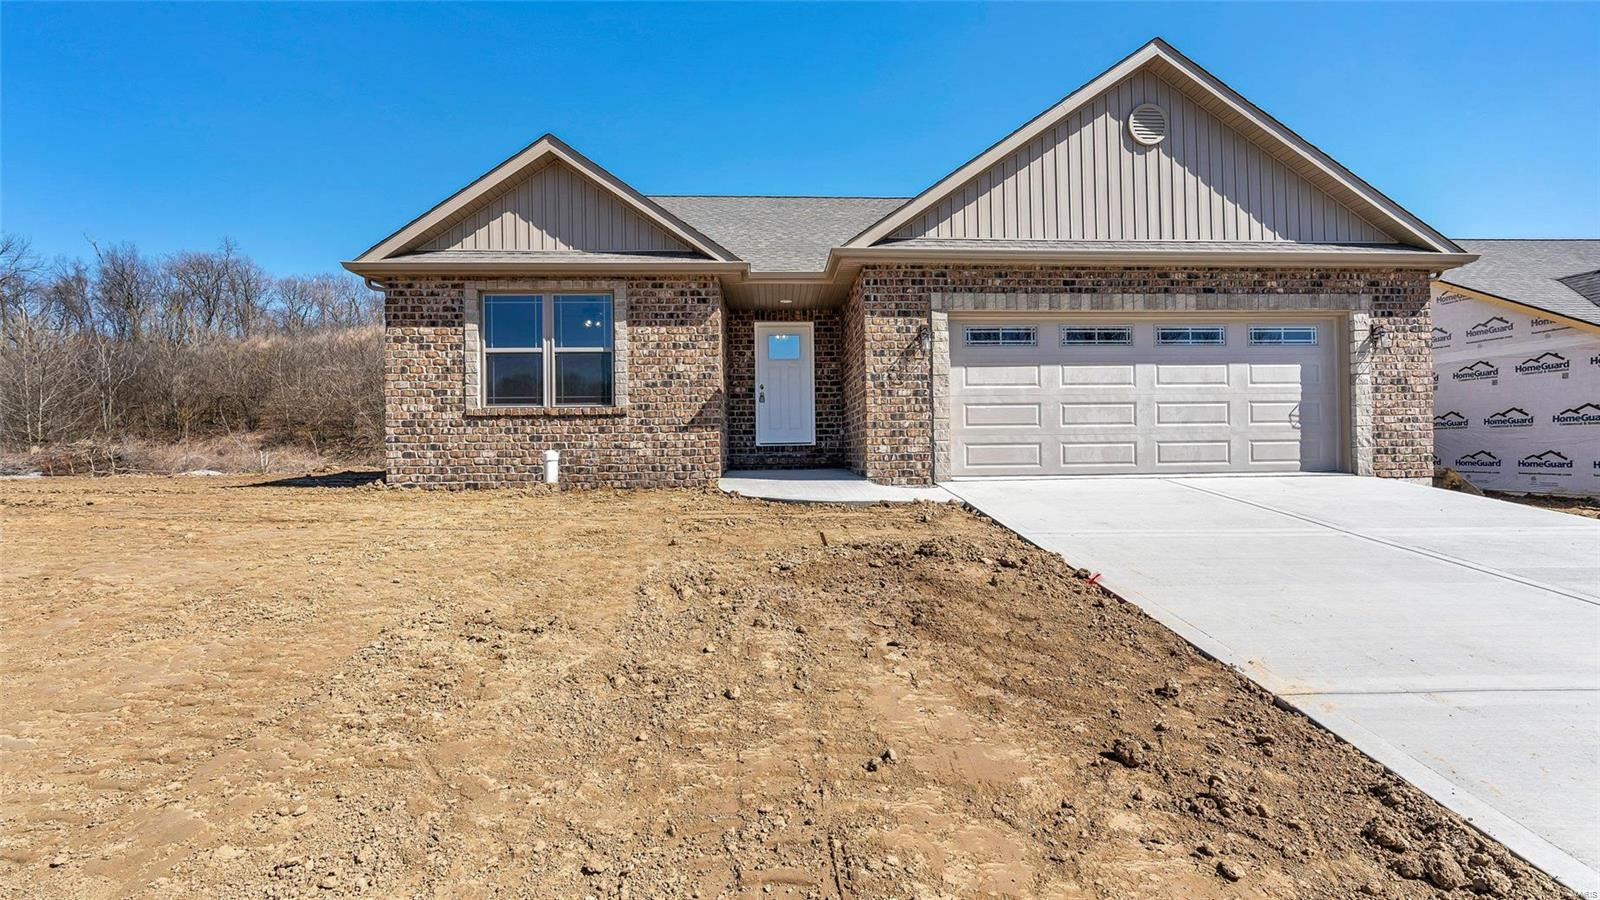 7992 Walker Meadows Drive, Caseyville, IL 62232 - MLS#: 19075376